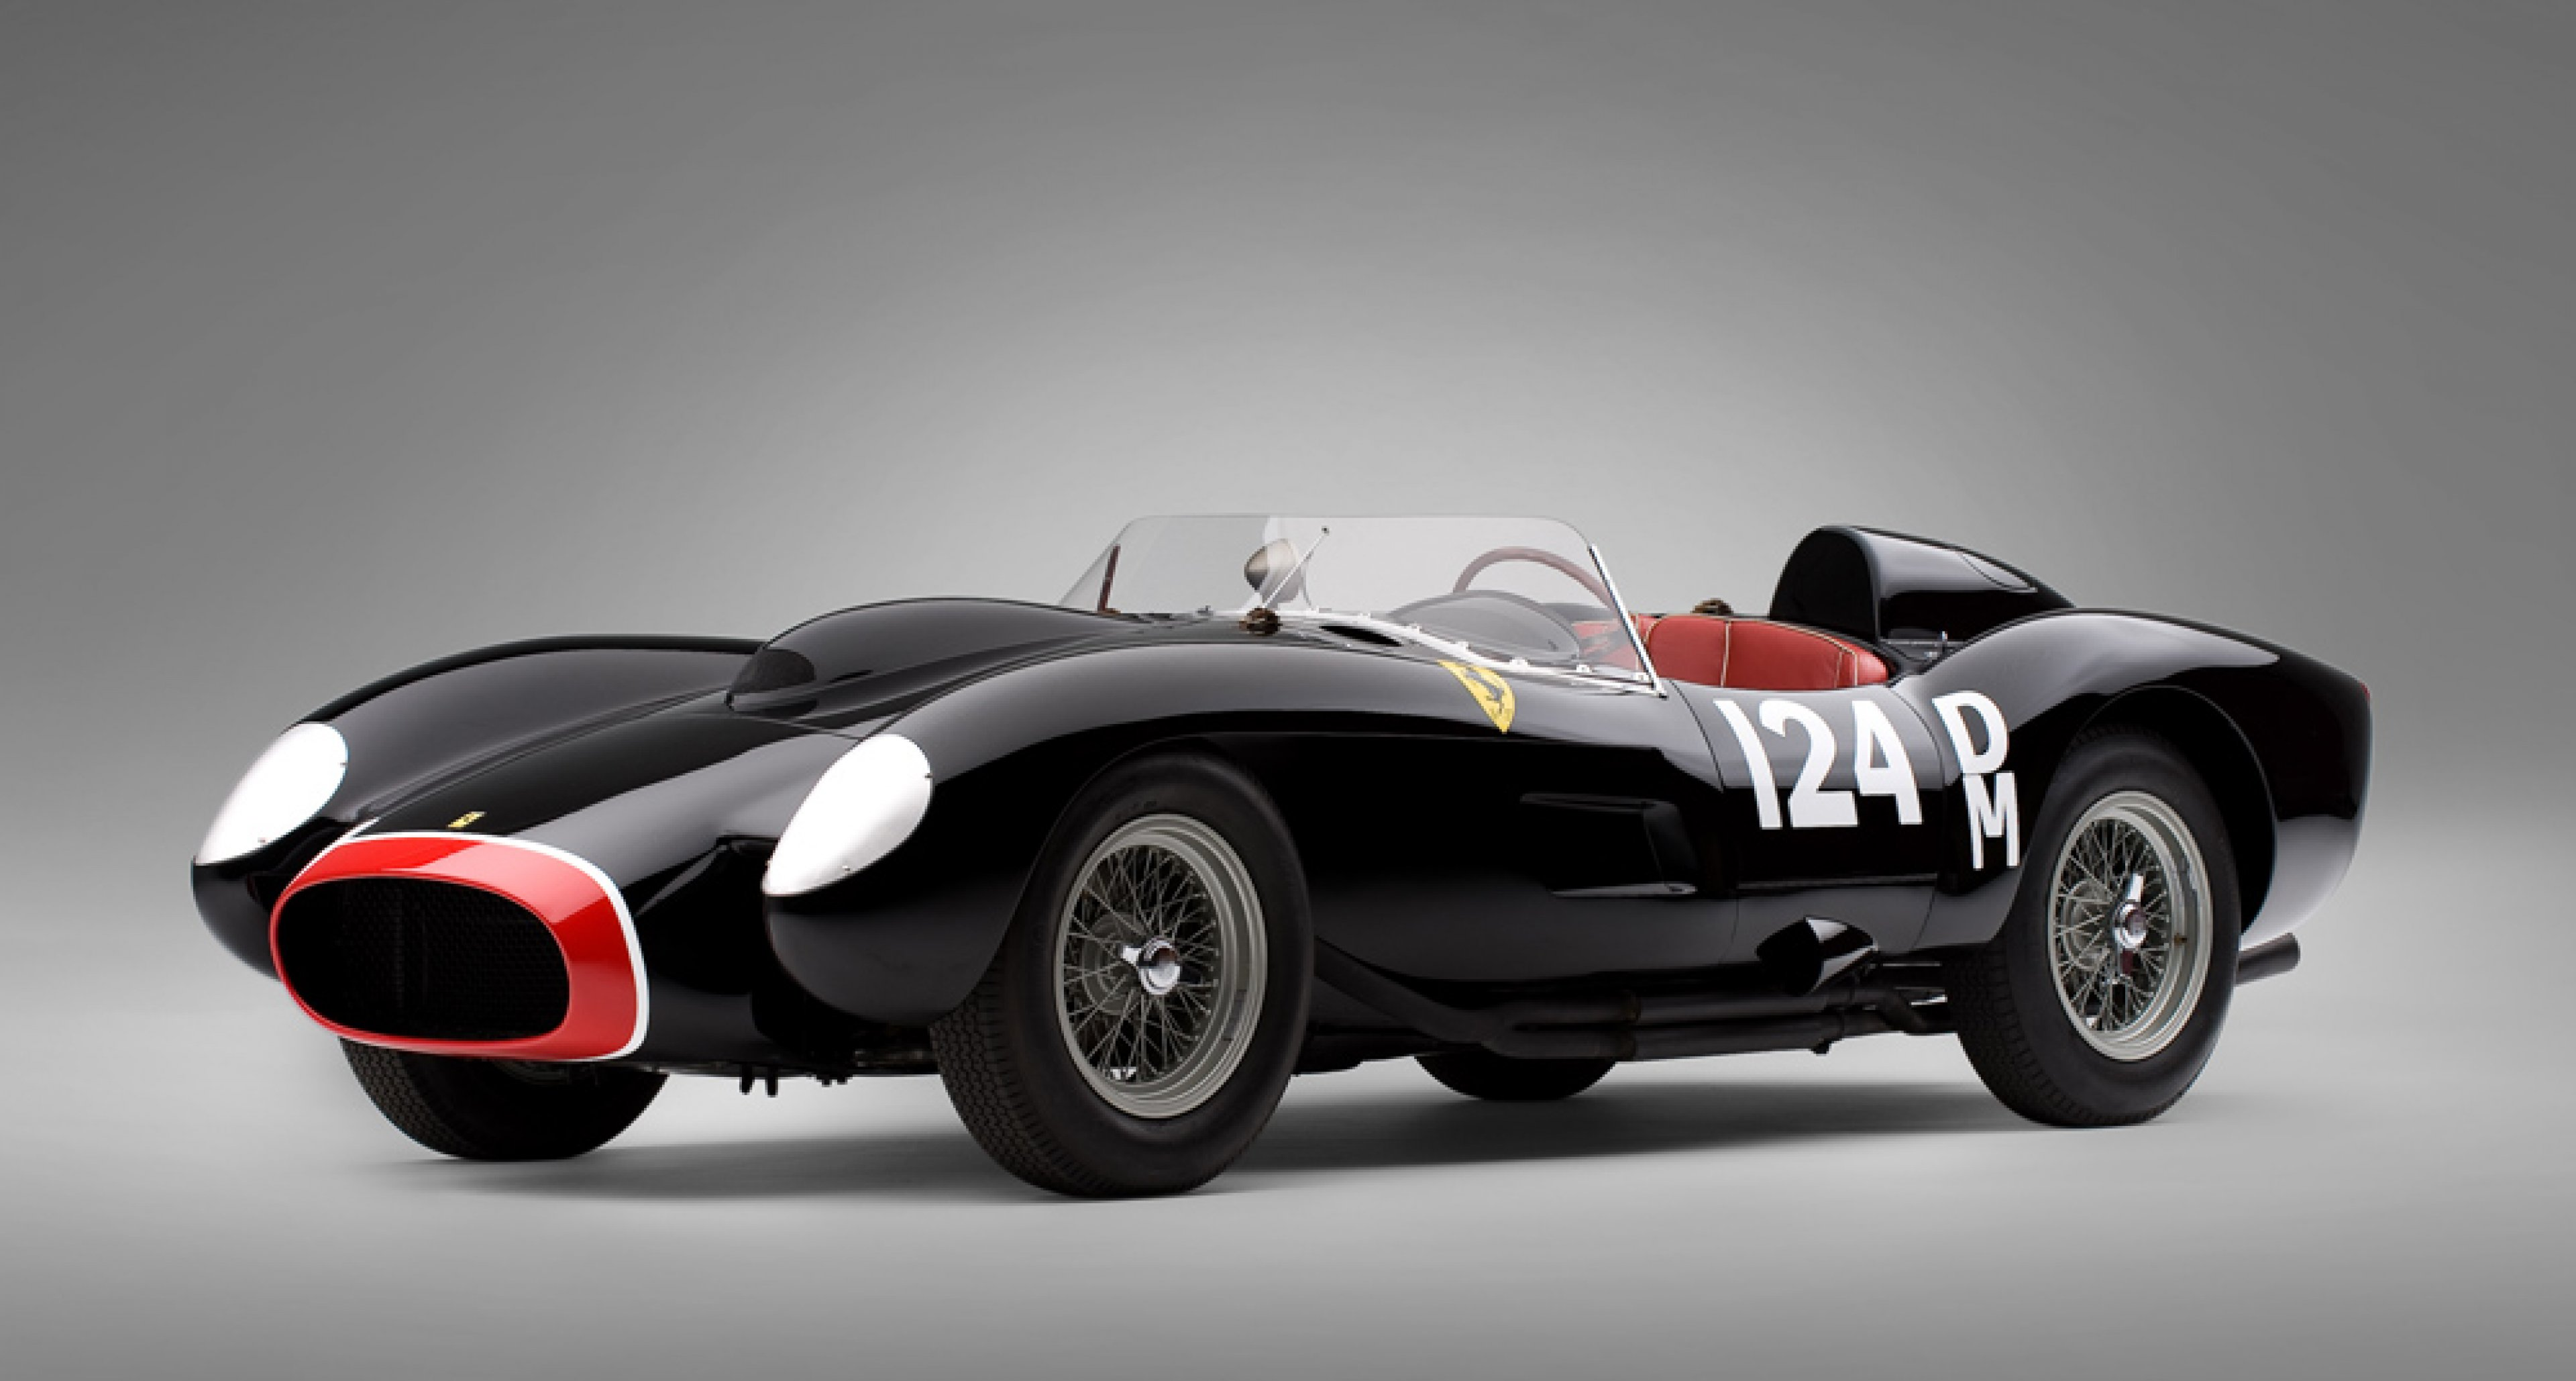 1957 Ferrari 250 Testa Rossa, sold by RM Auctions in May 2009 for $ 13,633,708.